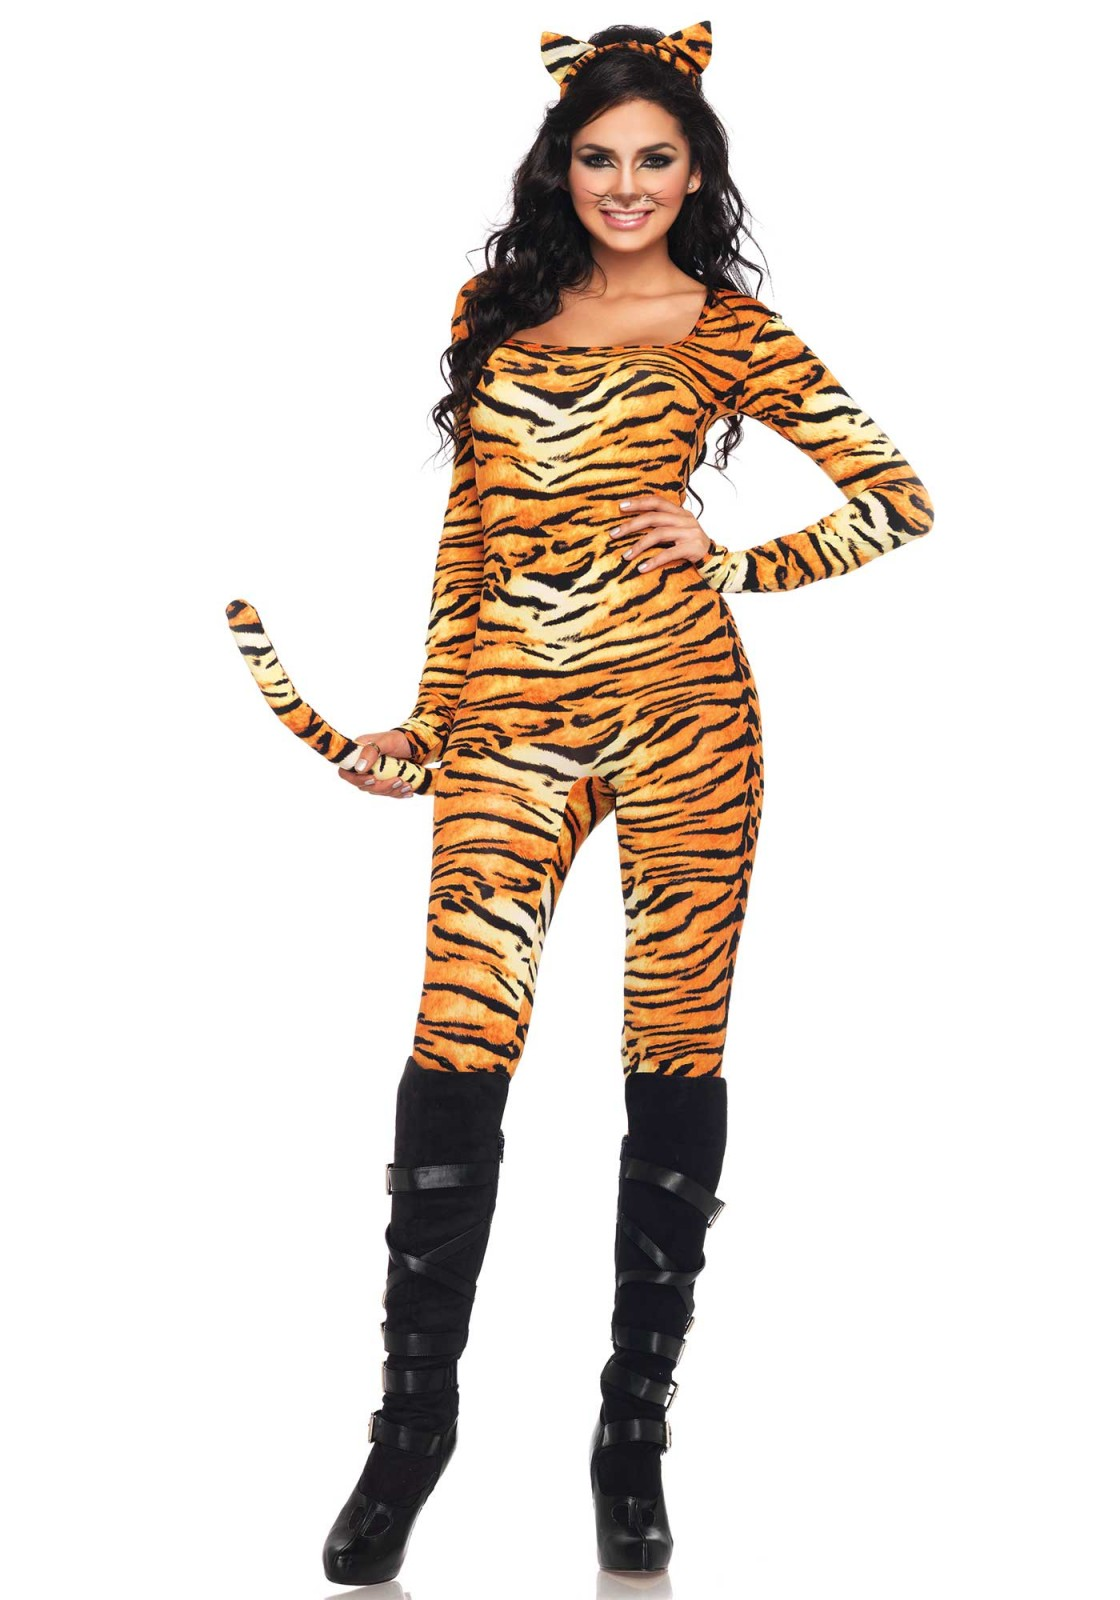 2Pc. Wild Tigress Costume Set With Catsuit With Tail And Matching Ear Headband